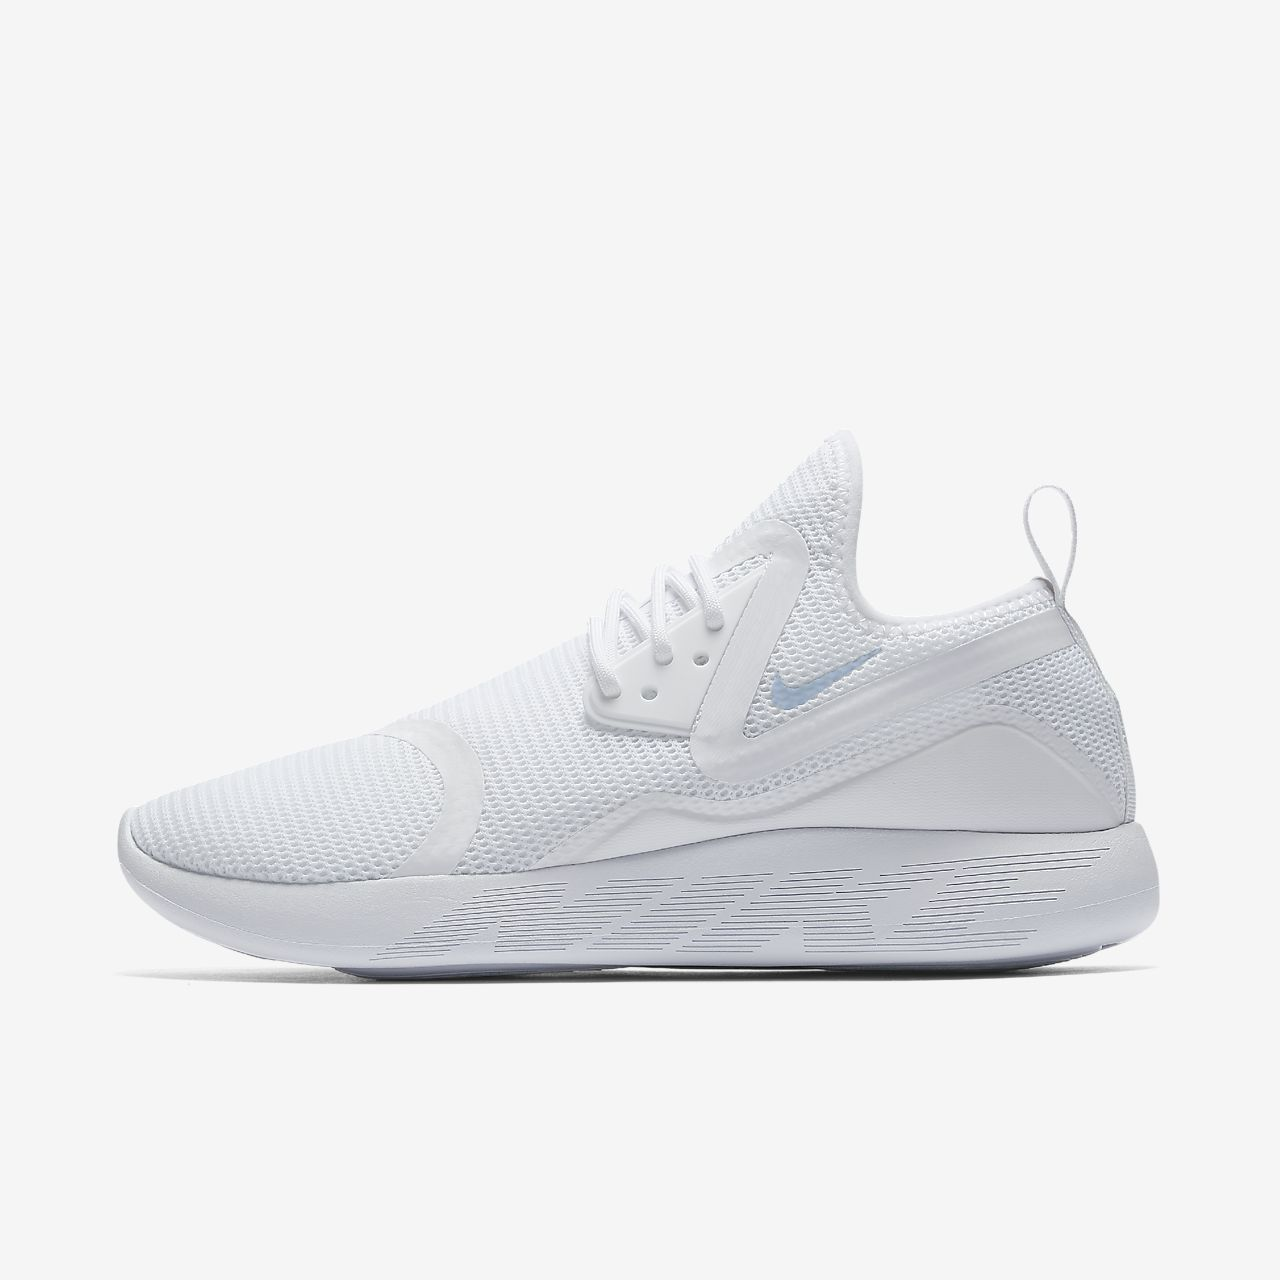 Chaussure Breathe Nike LunarCharge Breathe Chaussure pour BE c4ade1